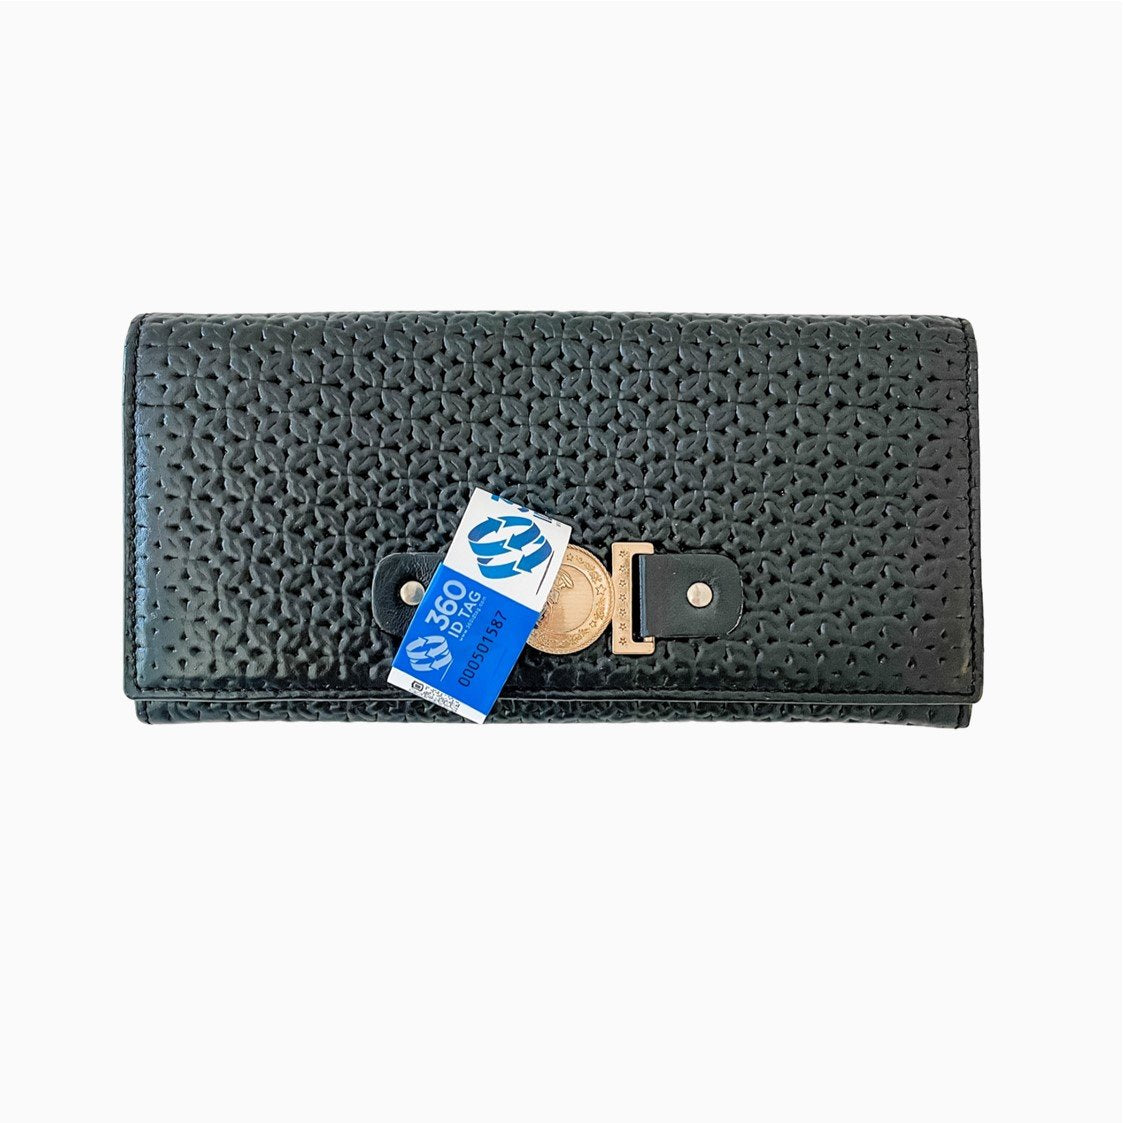 Wallet with e-commerce return tag to prevent return fraud like wardrobing, wear and return, counterfeit product switches. 360 ID Tag